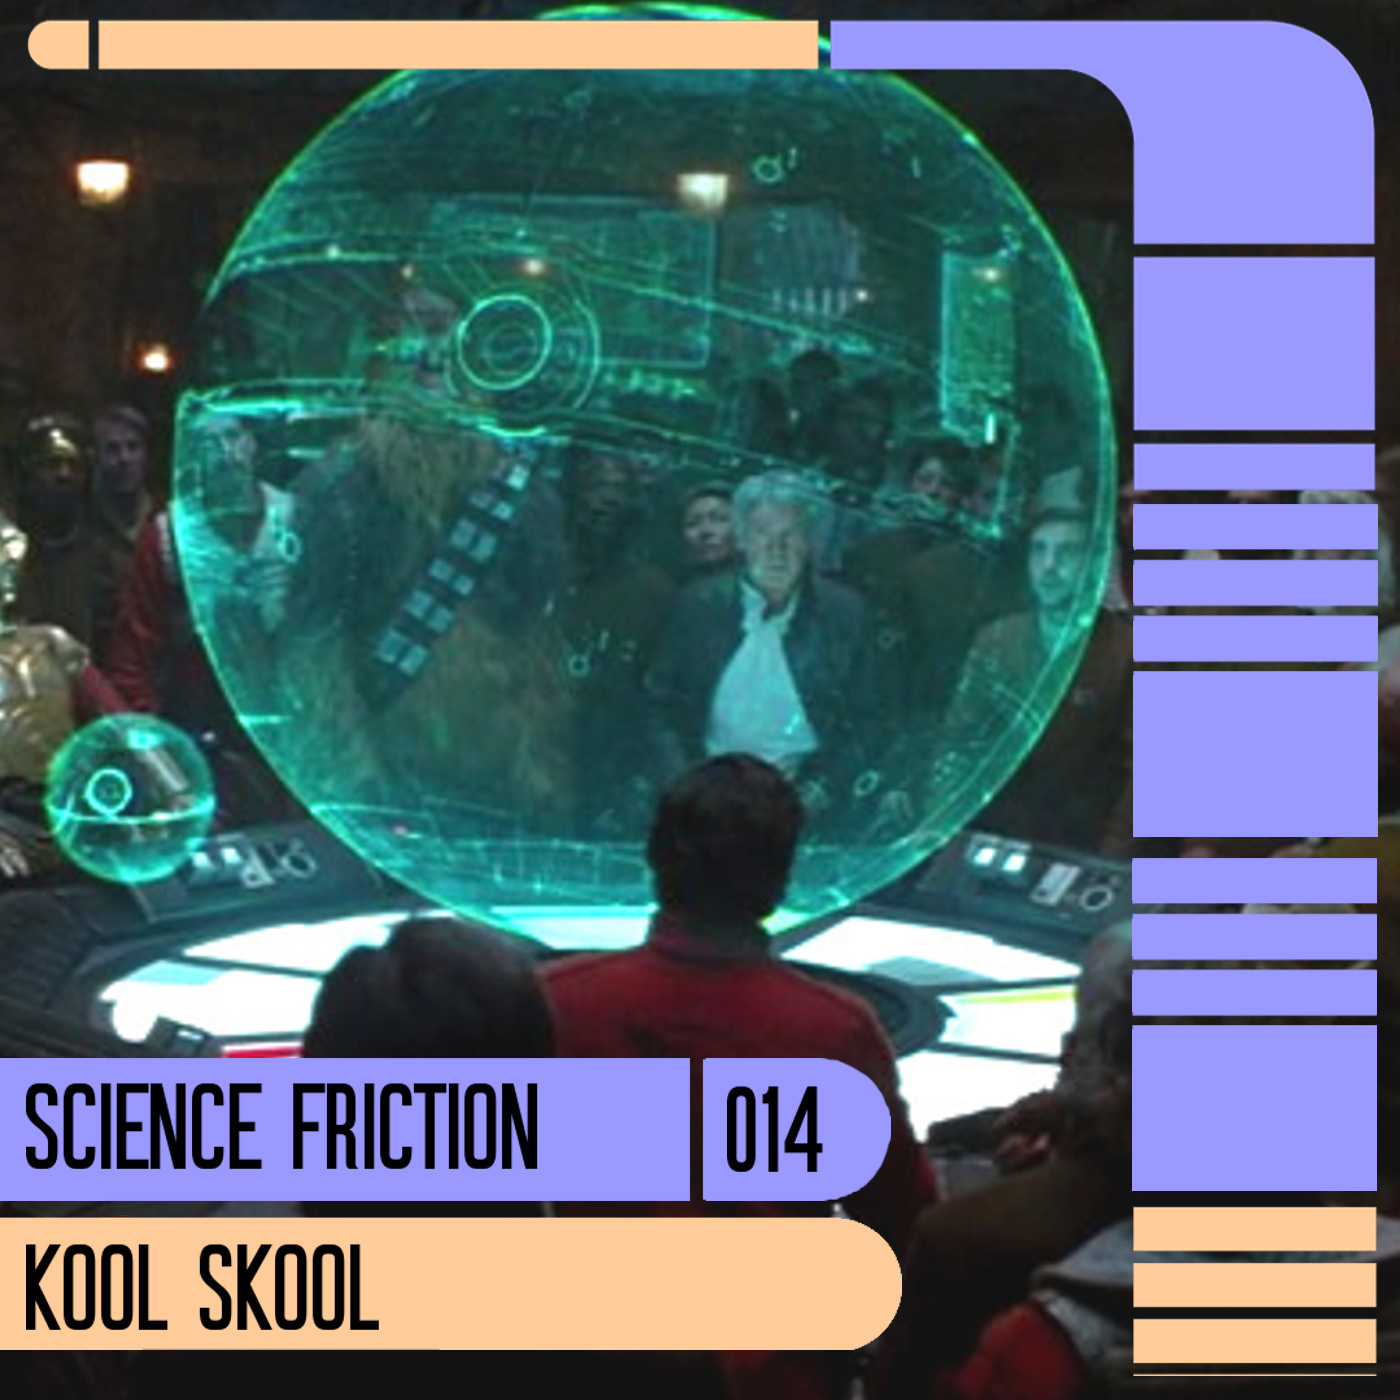 Science Friction 014: Kool Skool